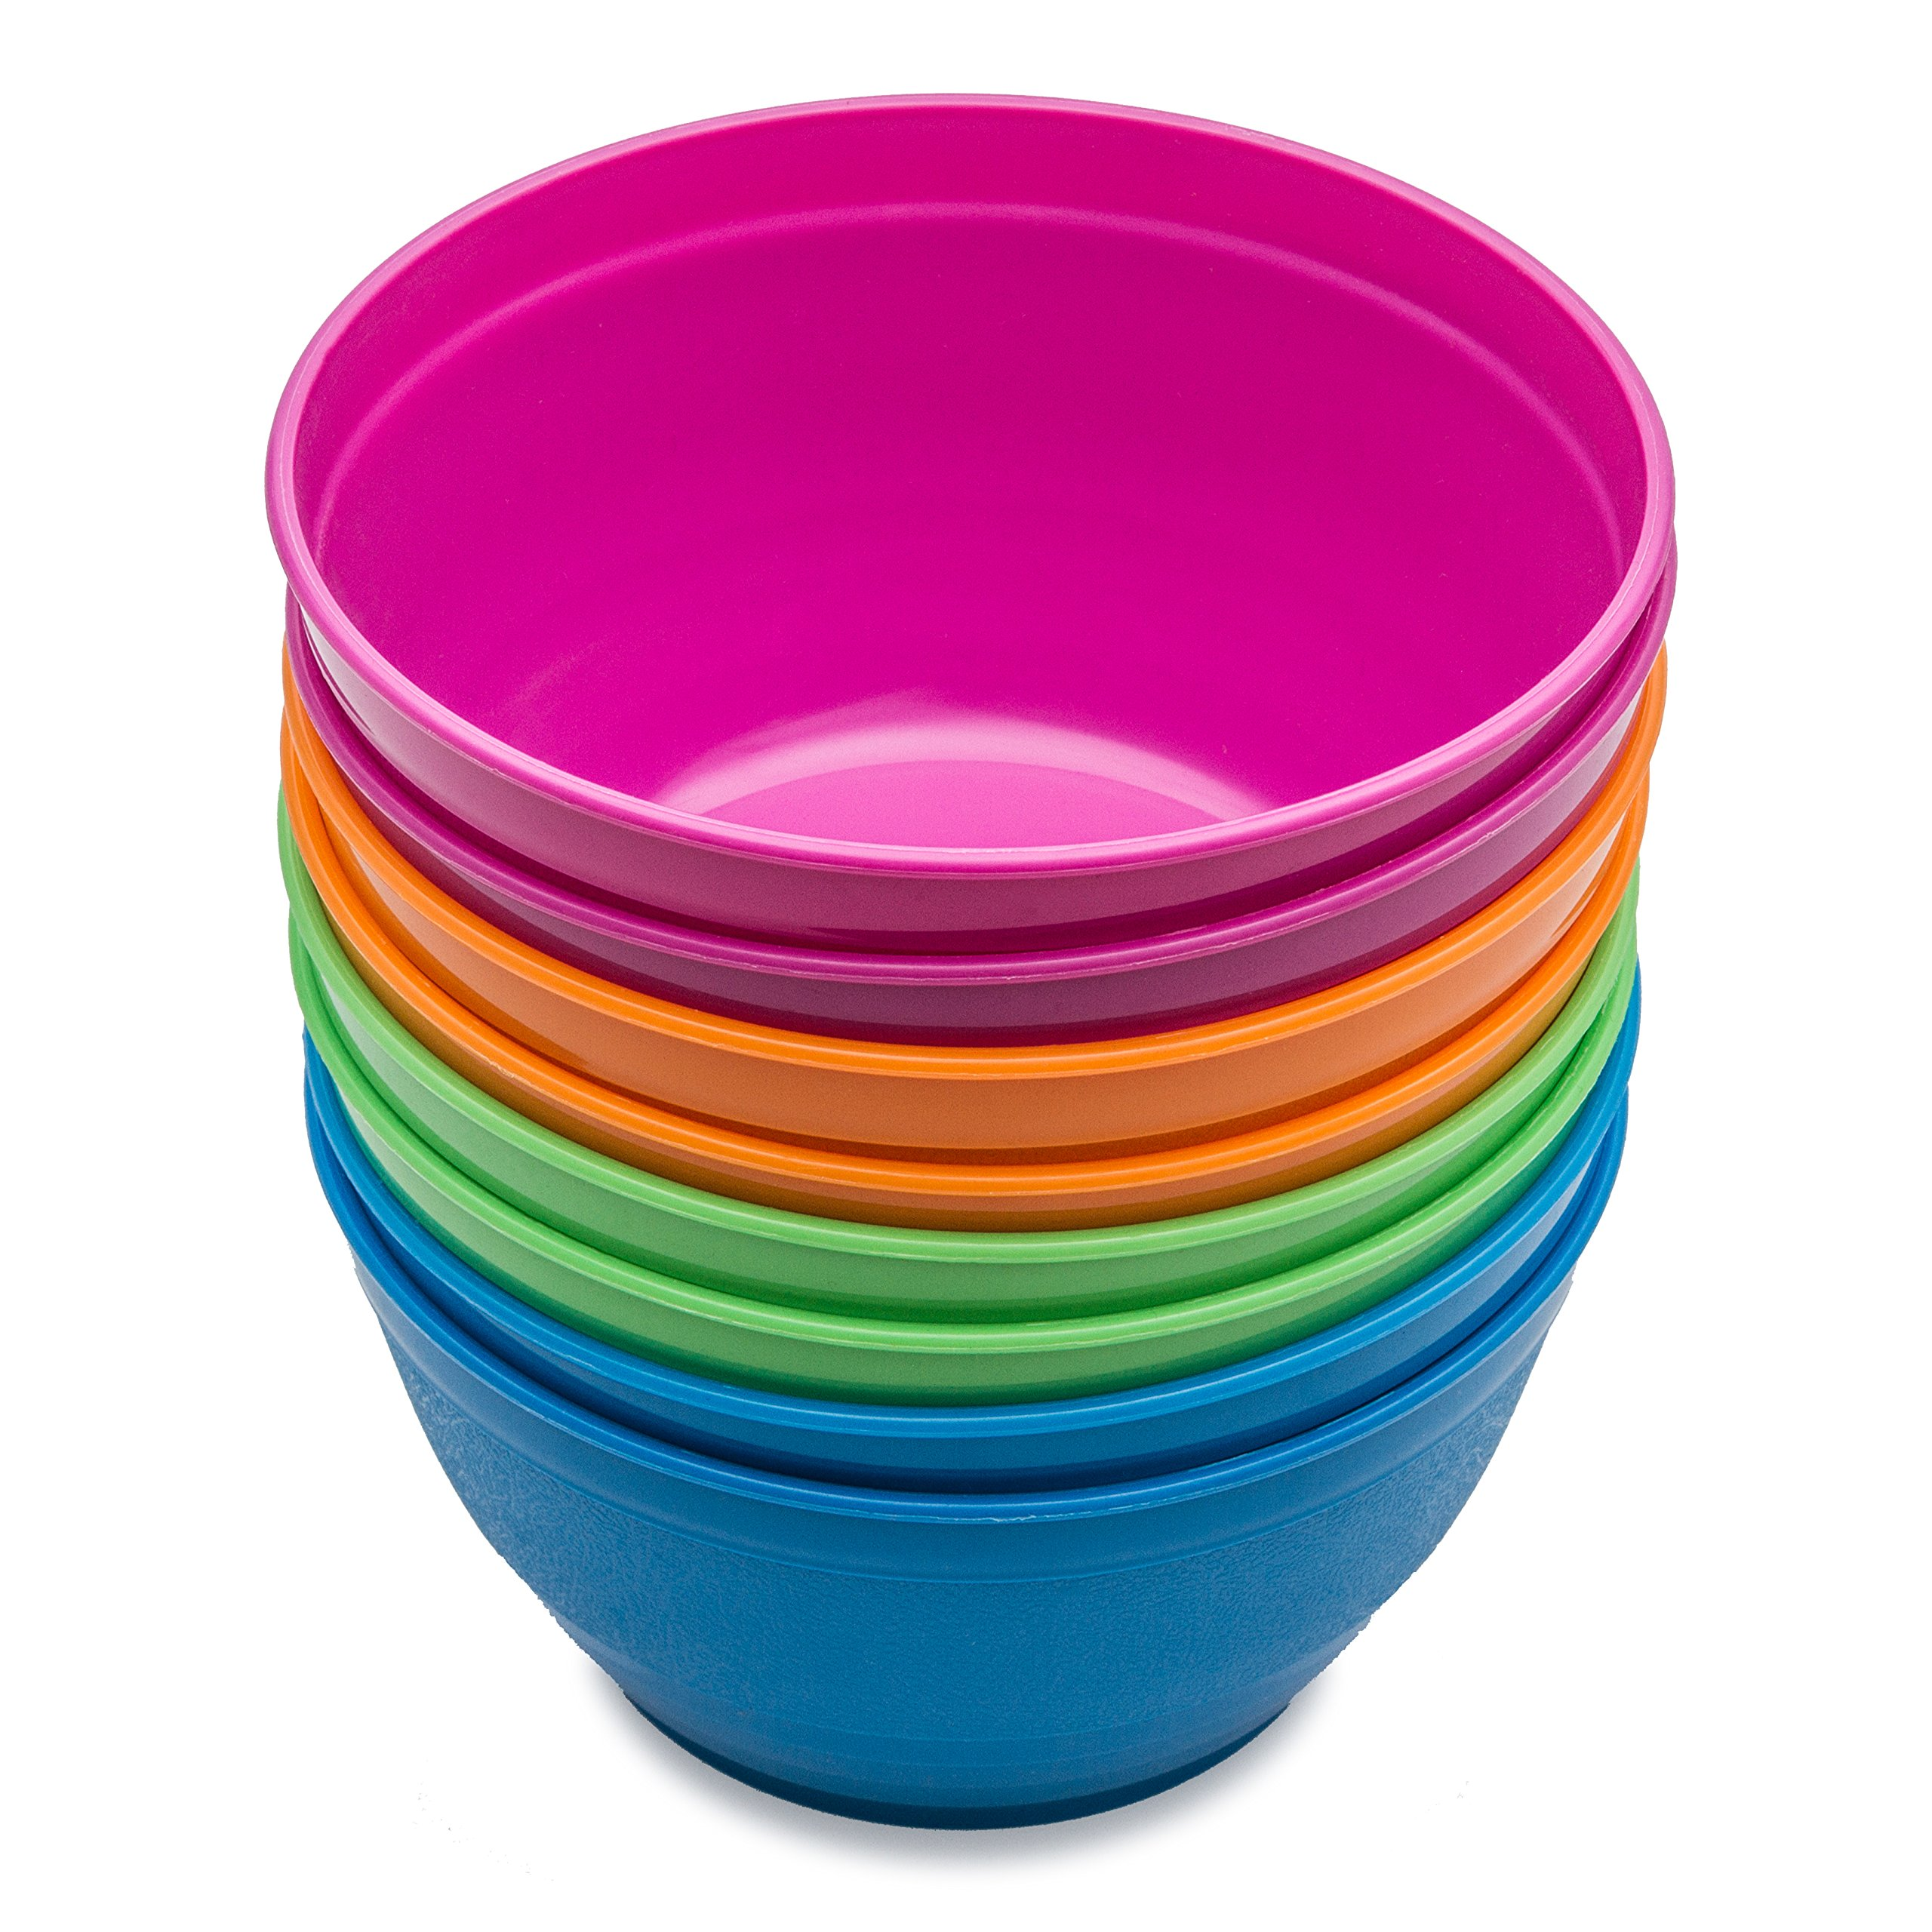 Cereal bowls, Soup bowls, Snack bowls, Noodle bowls, Kids bowls, Toddlers bowls, College Students bowls, 8 pieces Assorted Colours by iVolo